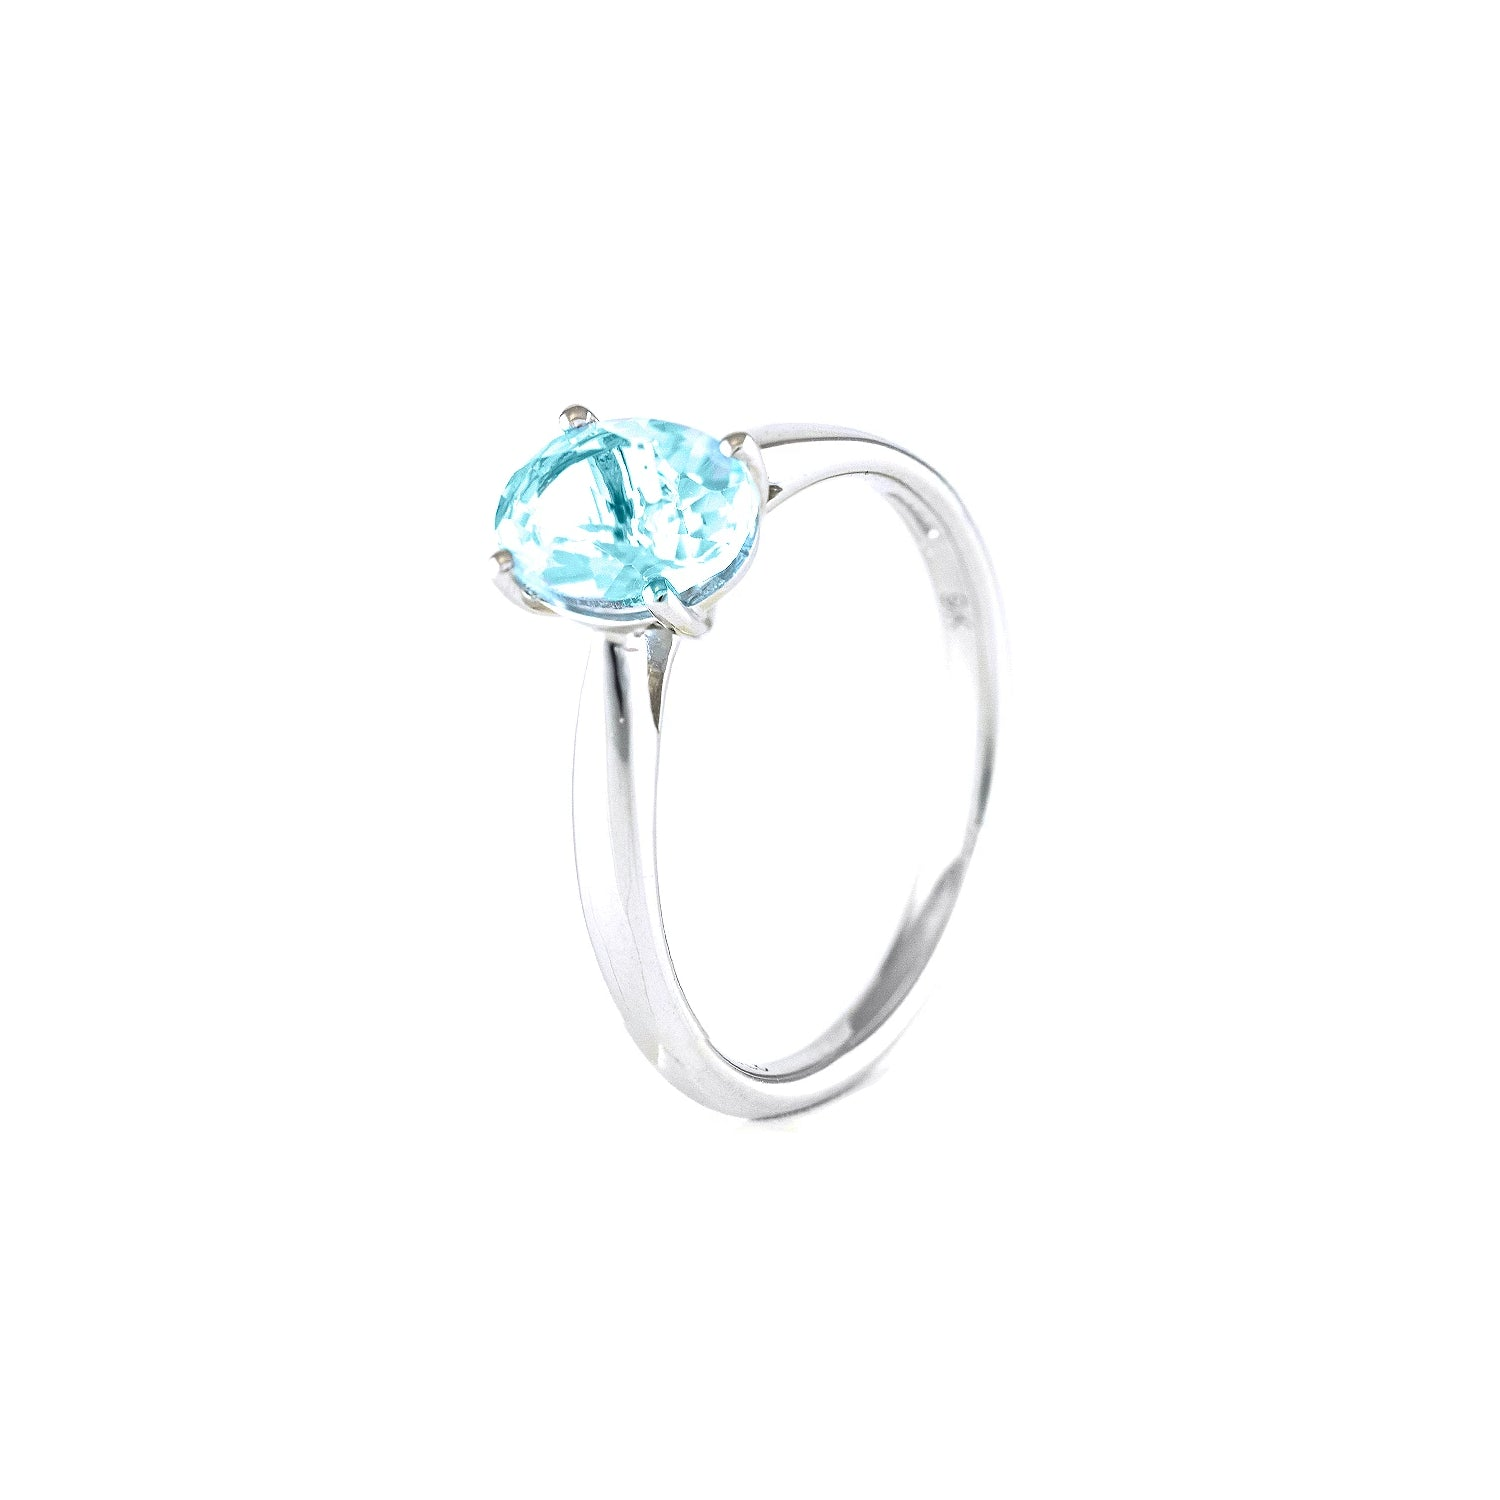 Oval blue topaz set into and 9ct white gold band, single stone ring